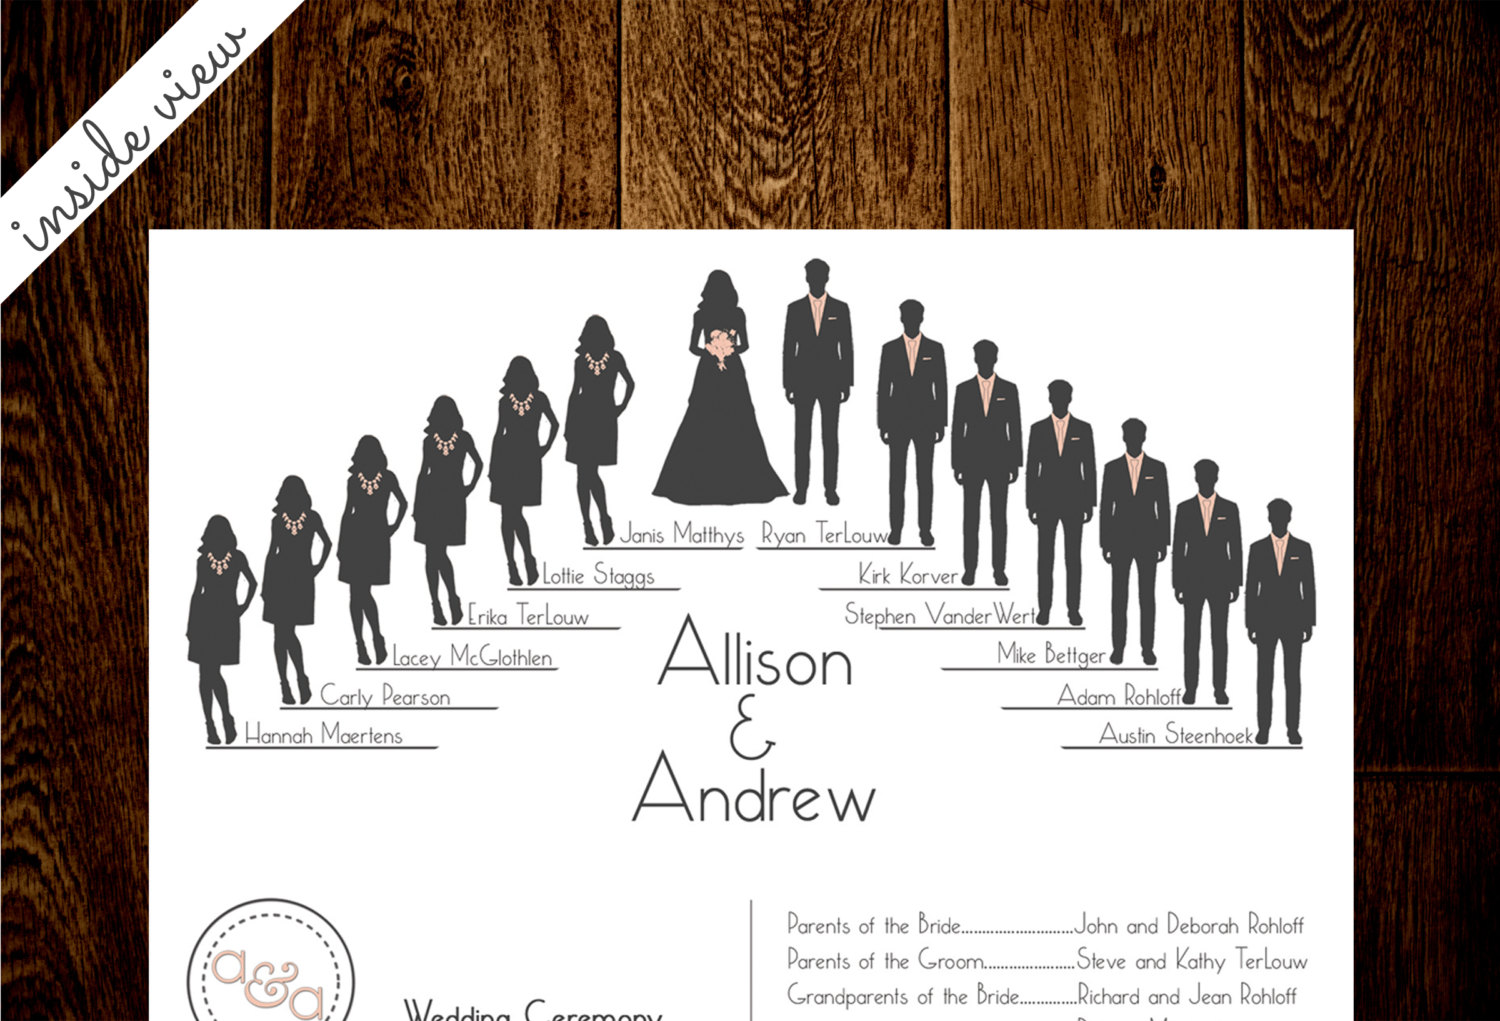 Bridal Party Silhouette Template Bridal Party Silhouette Clip Art